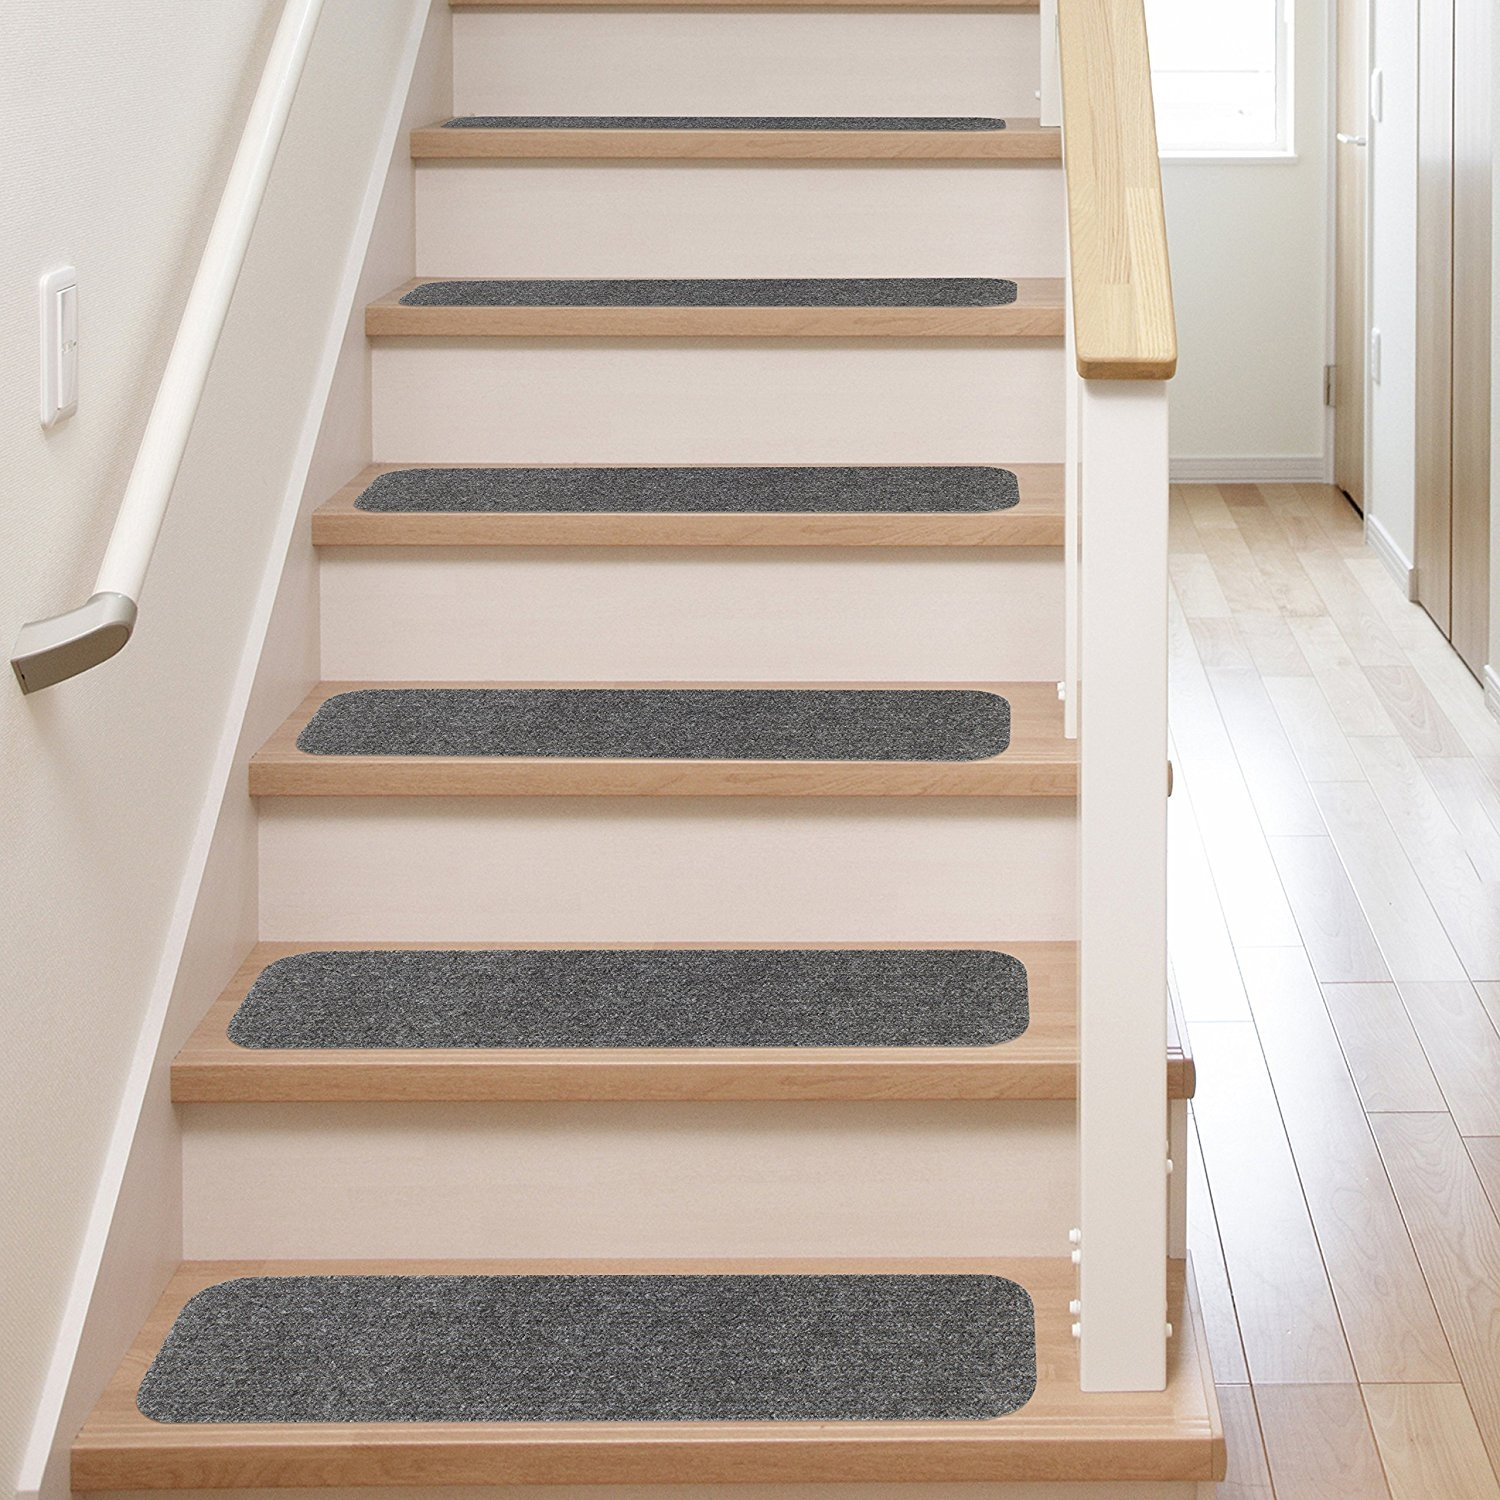 13 Stair Treads Non Slip Carpet Pads Easy Tape Installation Throughout Fabric Stair Treads (Image 1 of 15)